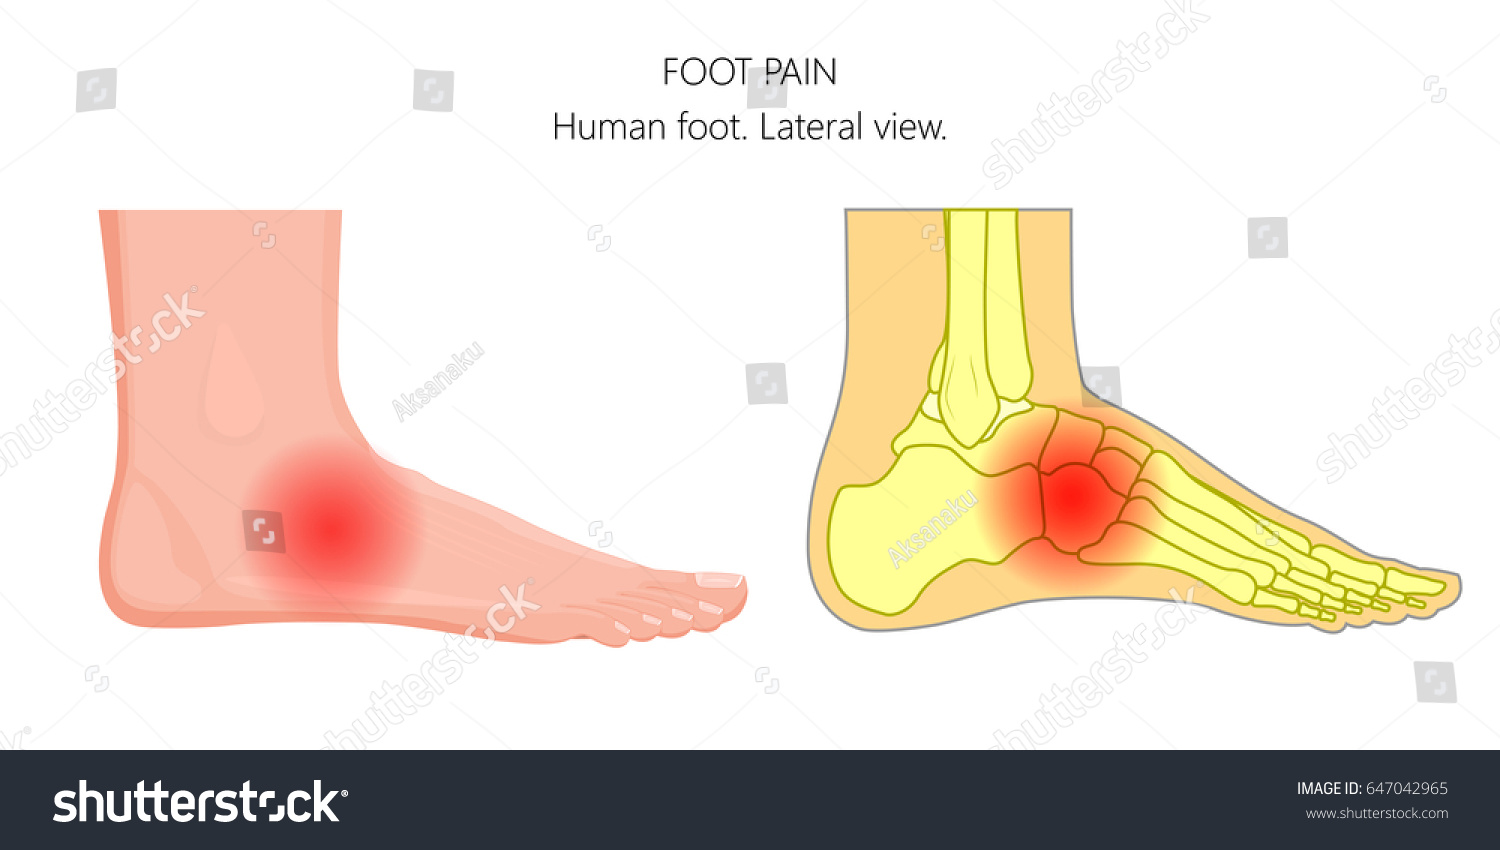 hight resolution of vector illustration of unhealthy human foot with midfoot pain or injury lateral or side view